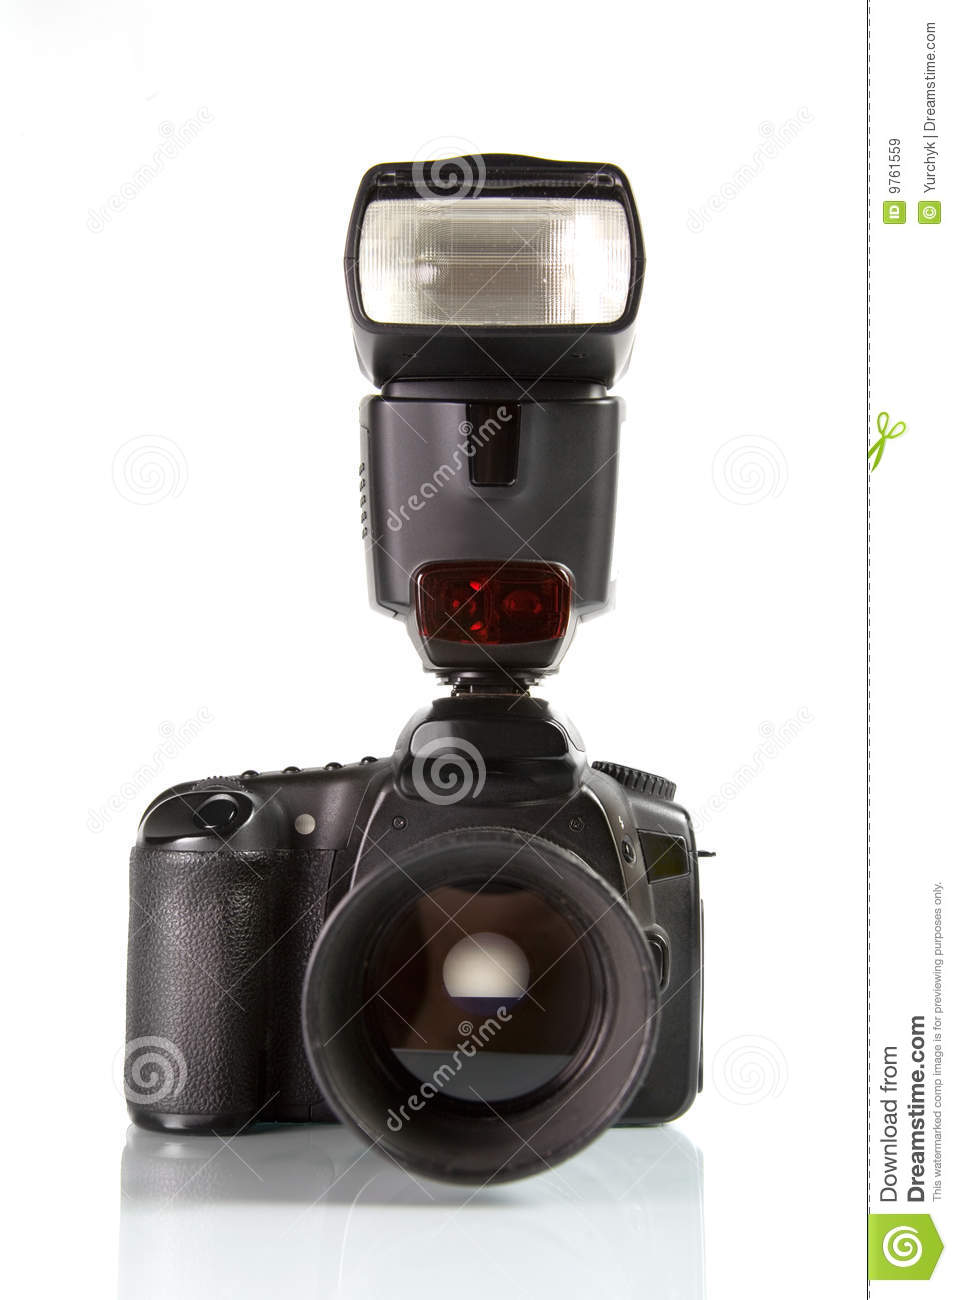 Professional digital photo camera front view